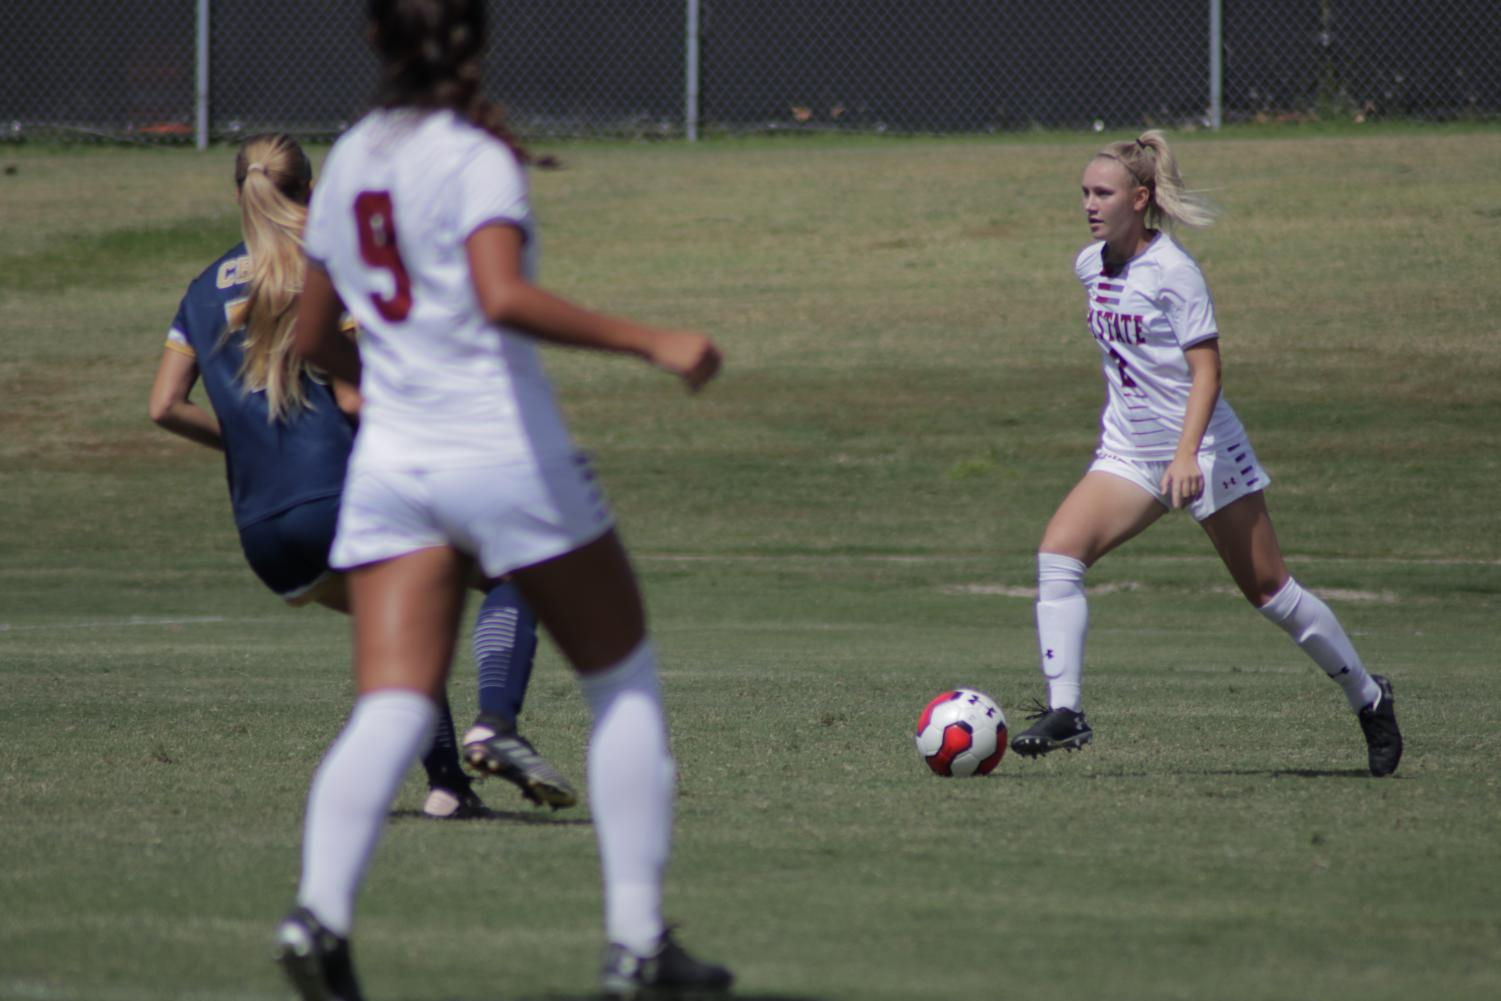 The Aggies look to double last season's win total this Saturday when they take on UTRGV for what shapes up to be an impactful Saturday of WAC soccer.